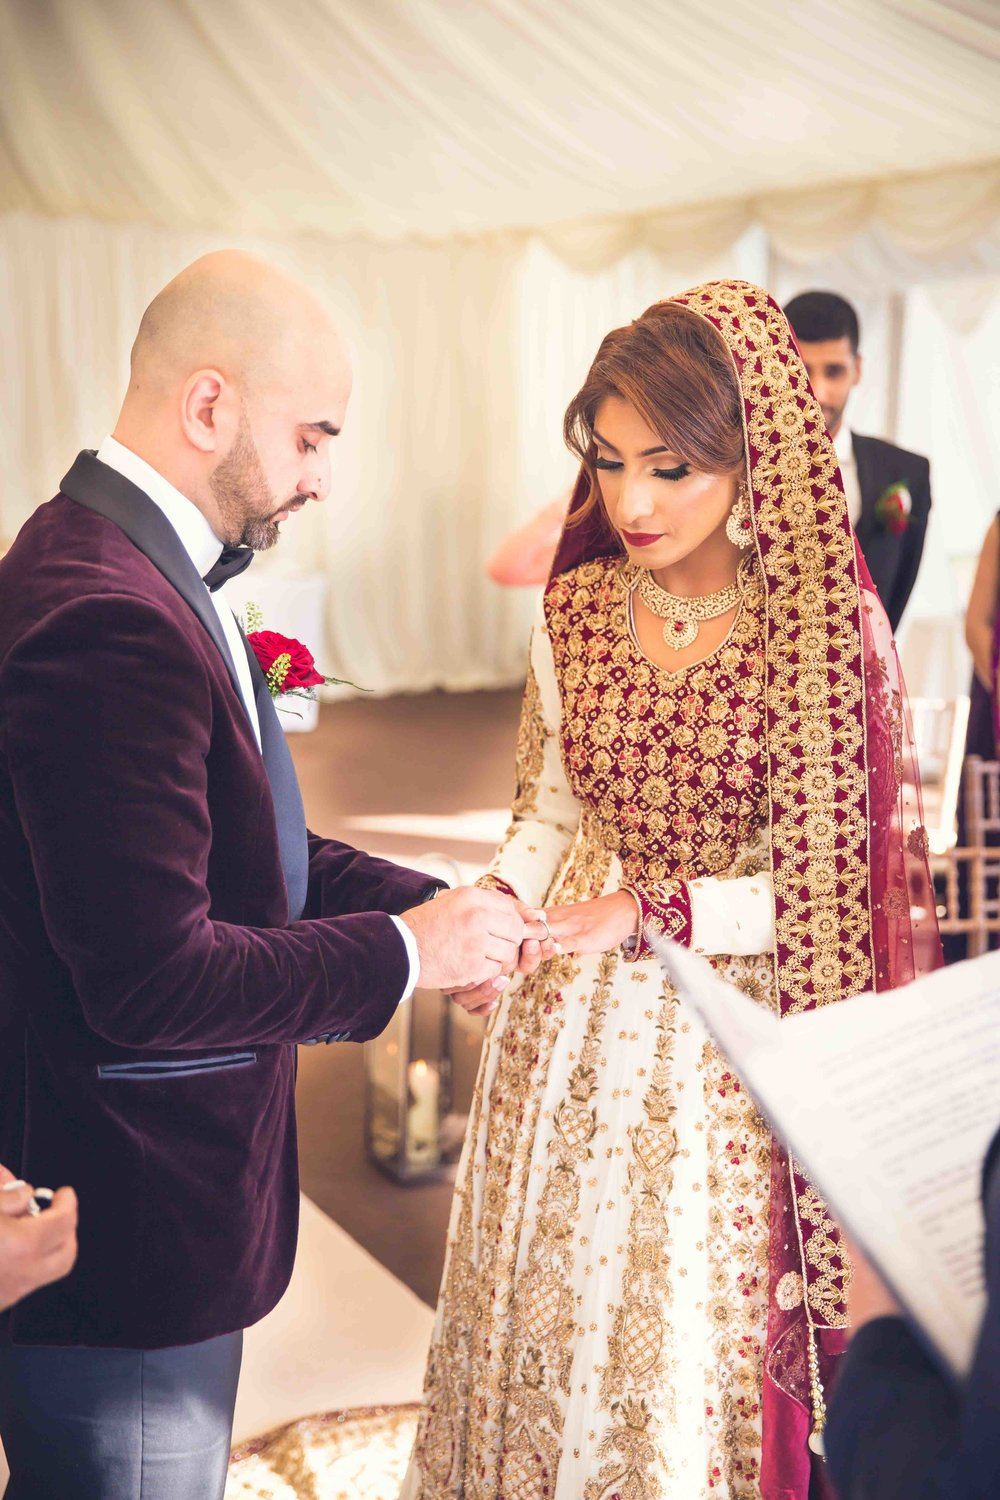 Asian Wedding Photographer Opu Sultan Photography Lyme Park Scotland Edinburgh Glasgow London Manchester Liverpool Birmingham Wedding Photos prewed shoot Azman & Saira Blog-73.jpg